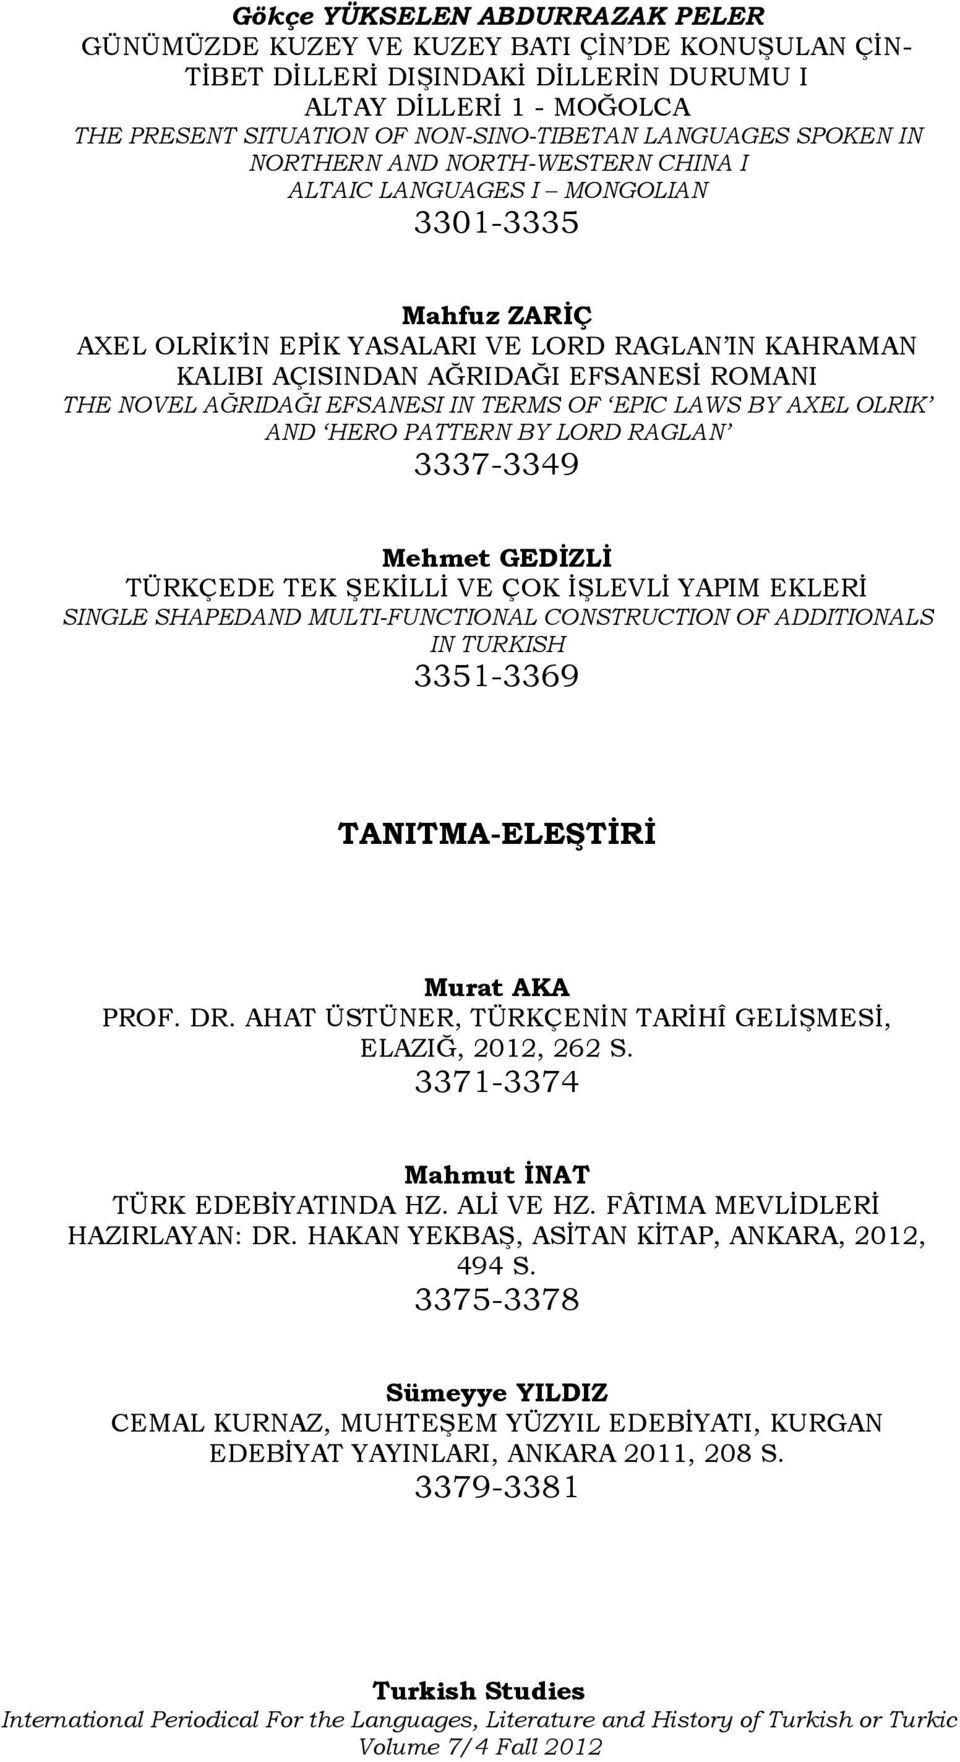 ROMANI THE NOVEL AĞRIDAĞI EFSANESI IN TERMS OF EPIC LAWS BY AXEL OLRIK AND HERO PATTERN BY LORD RAGLAN 3337-3349 Mehmet GEDĠZLĠ TÜRKÇEDE TEK ŞEKİLLİ VE ÇOK İŞLEVLİ YAPIM EKLERİ SINGLE SHAPEDAND